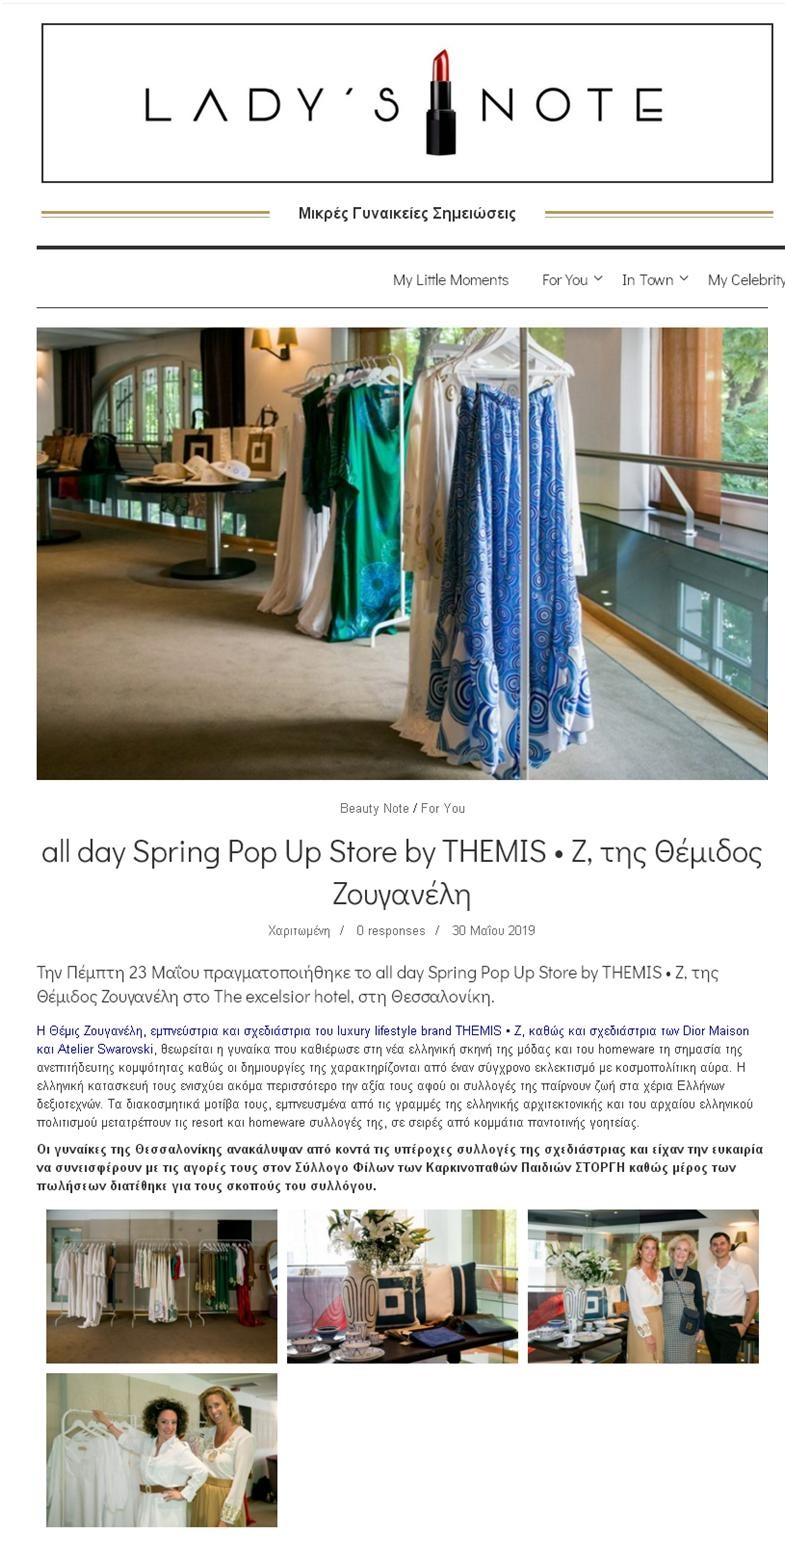 Spring Pop Up Store by THEMIS-Z